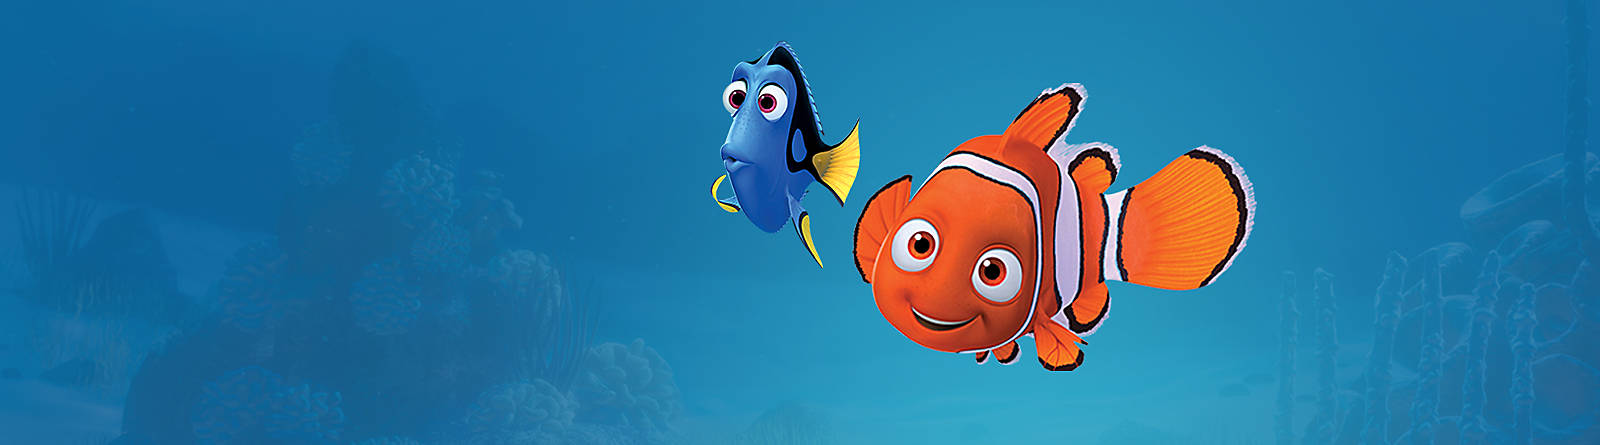 Finding Nemo - Toys, Costumes, DVDs & More | shopDisney